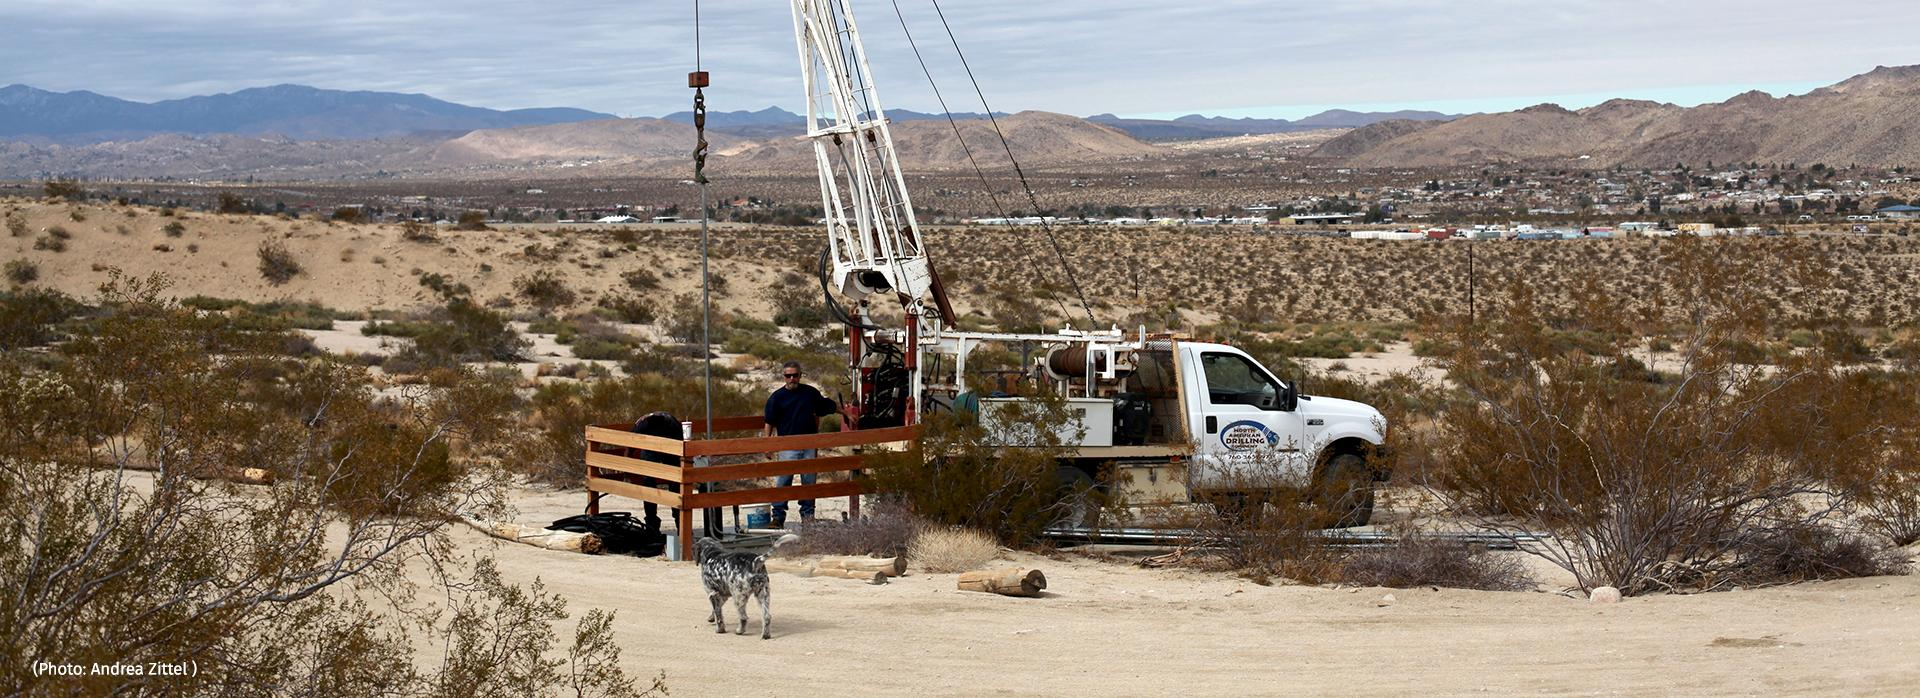 Drill Rig on a Arizona Western Roadway by Andrea Zittel